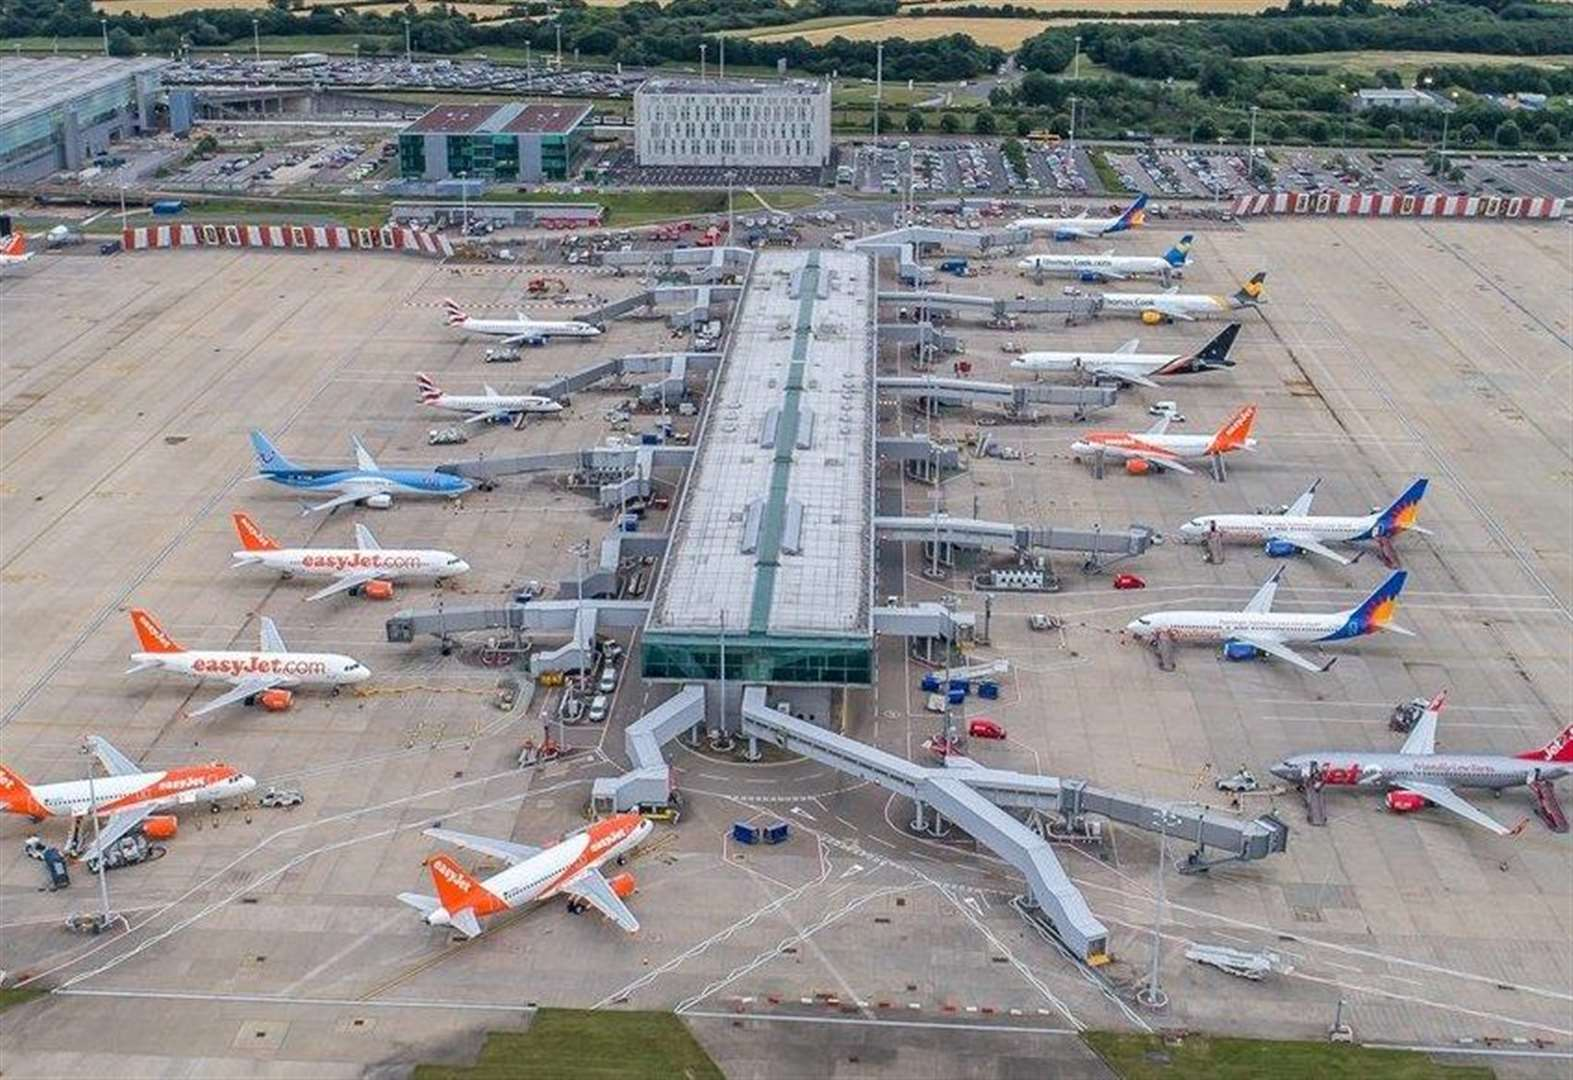 Travel agent and airport reassure customers over Brexit 'threat' to holidays